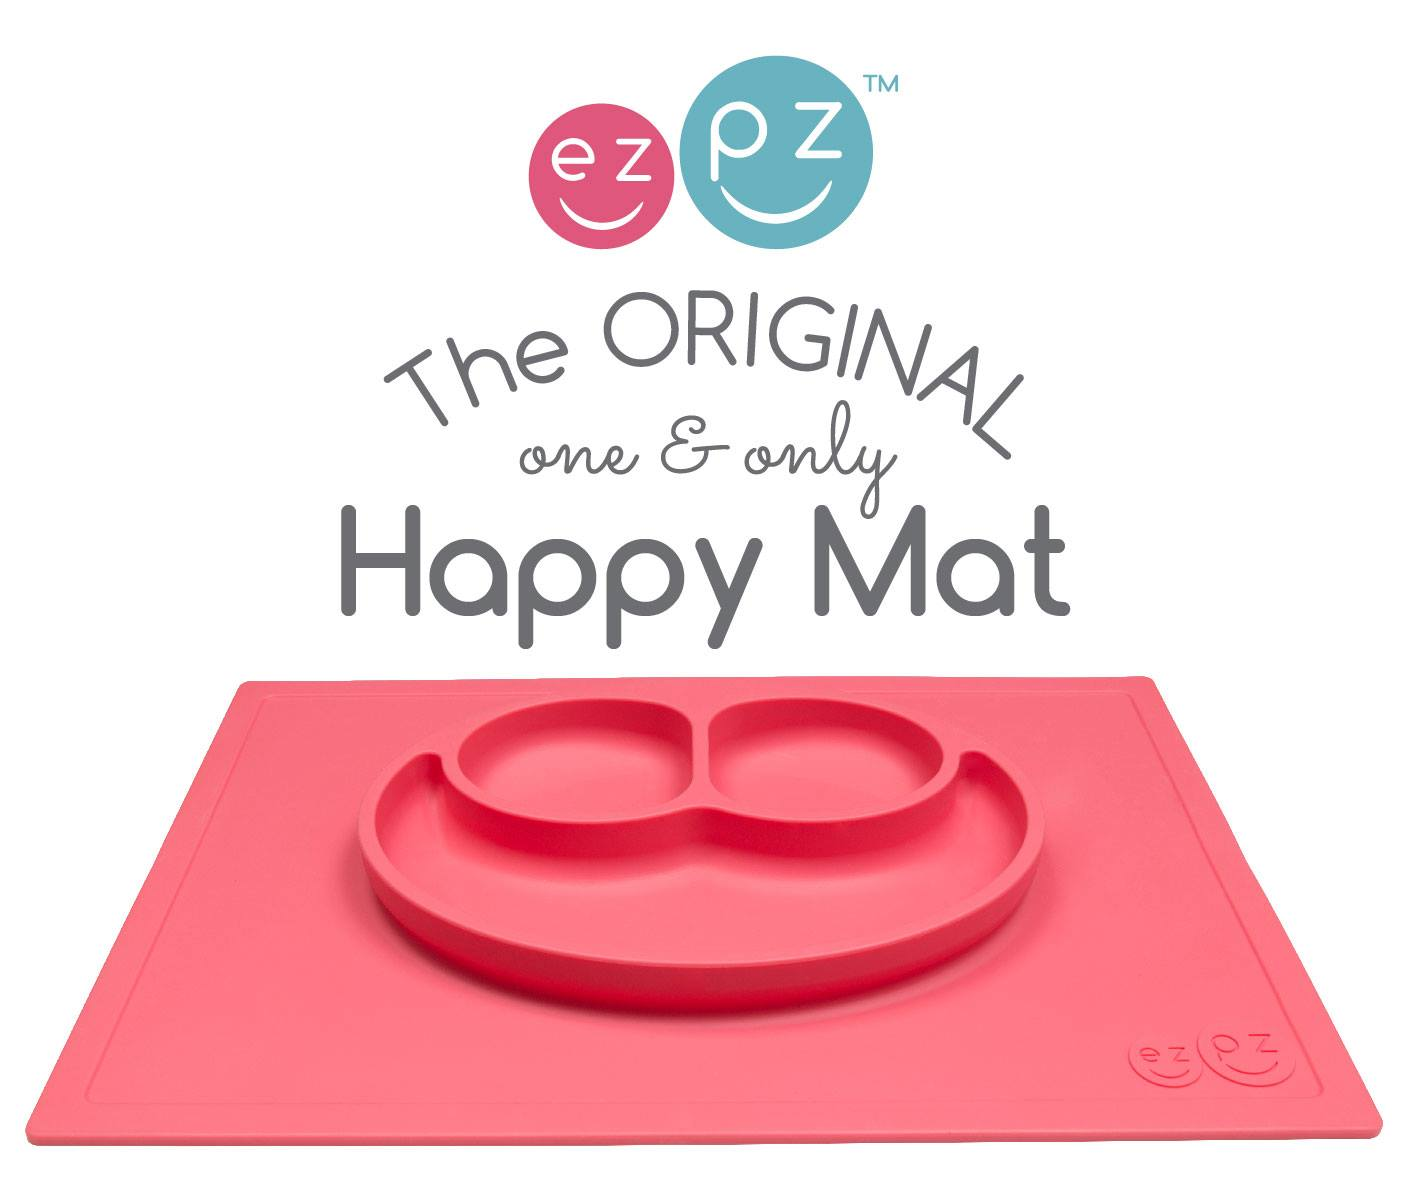 EZPZ Happy Mat-ezpz, silicone mat, food tray